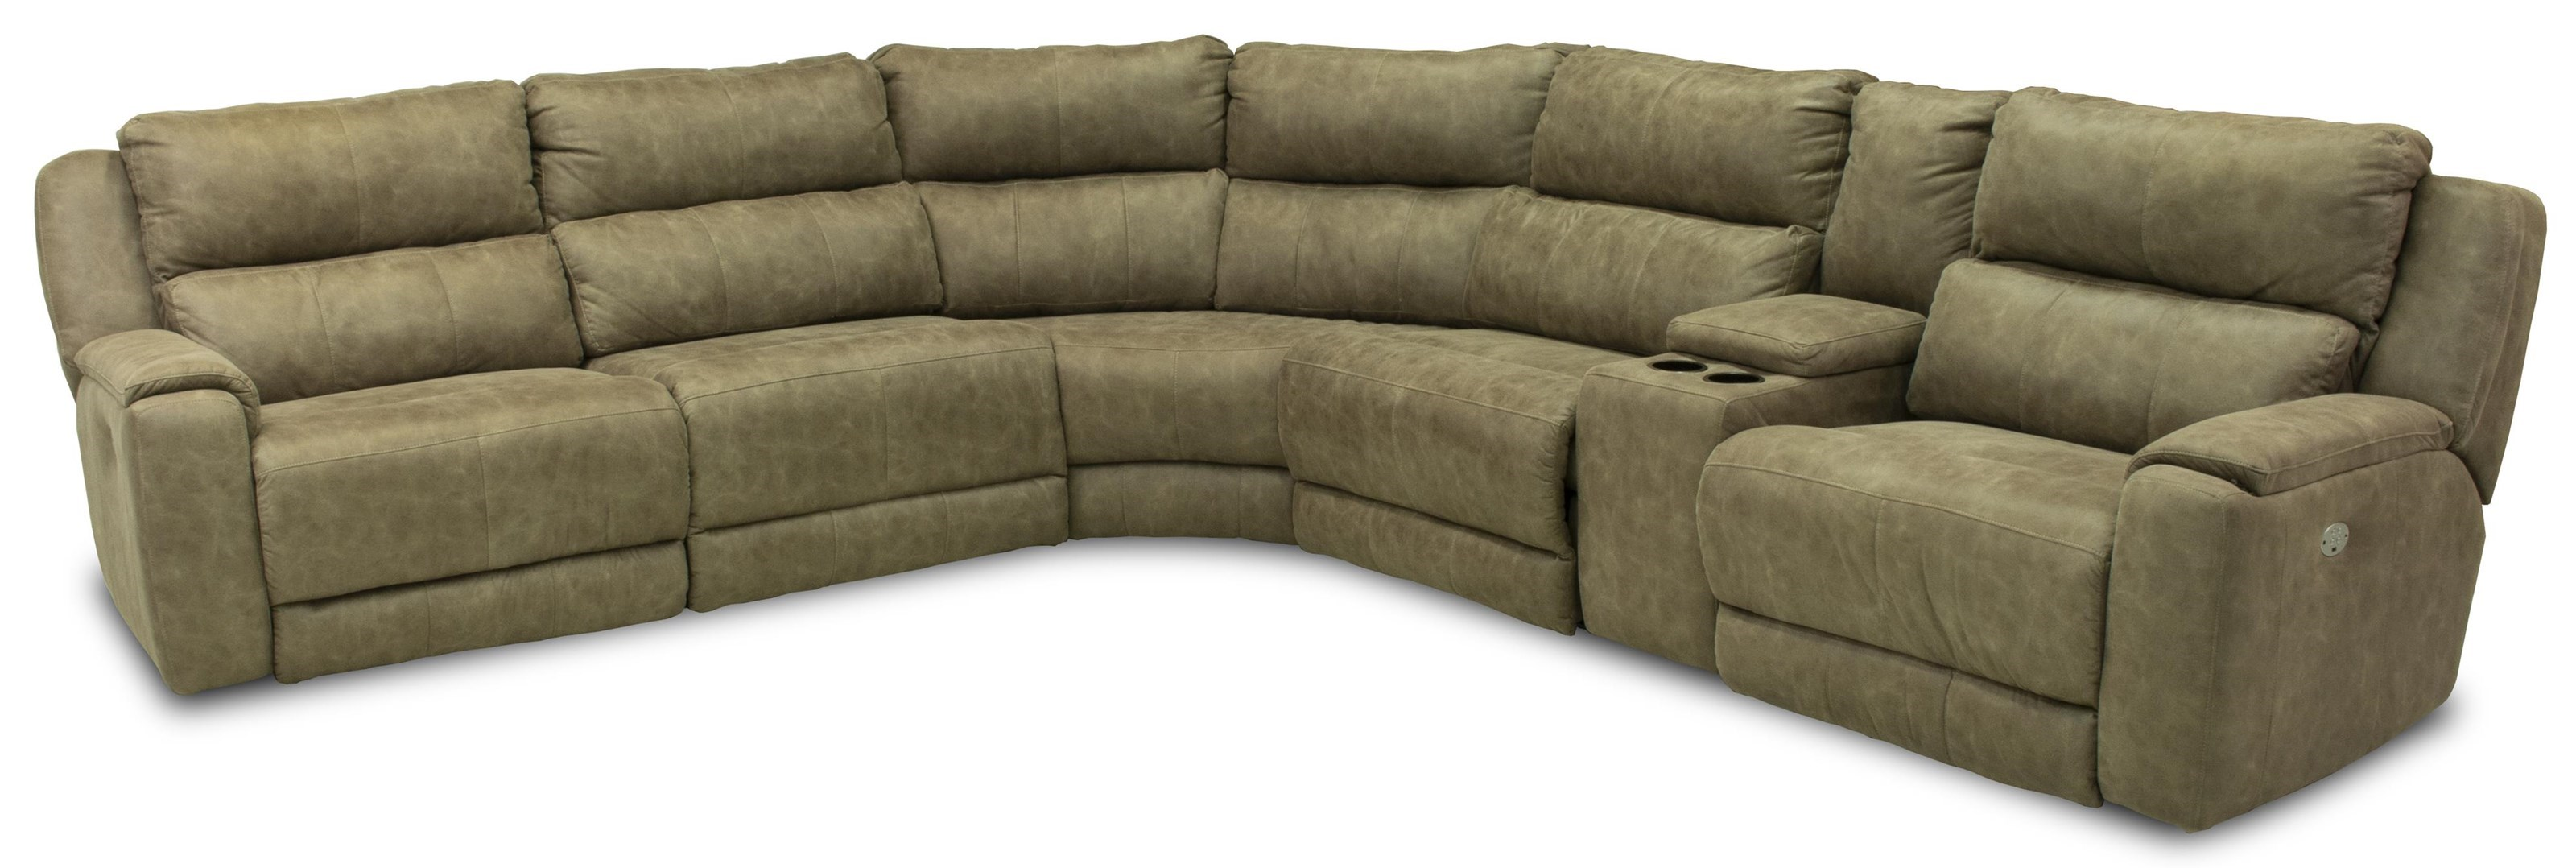 dazzle sectional w cup holders and power headrests